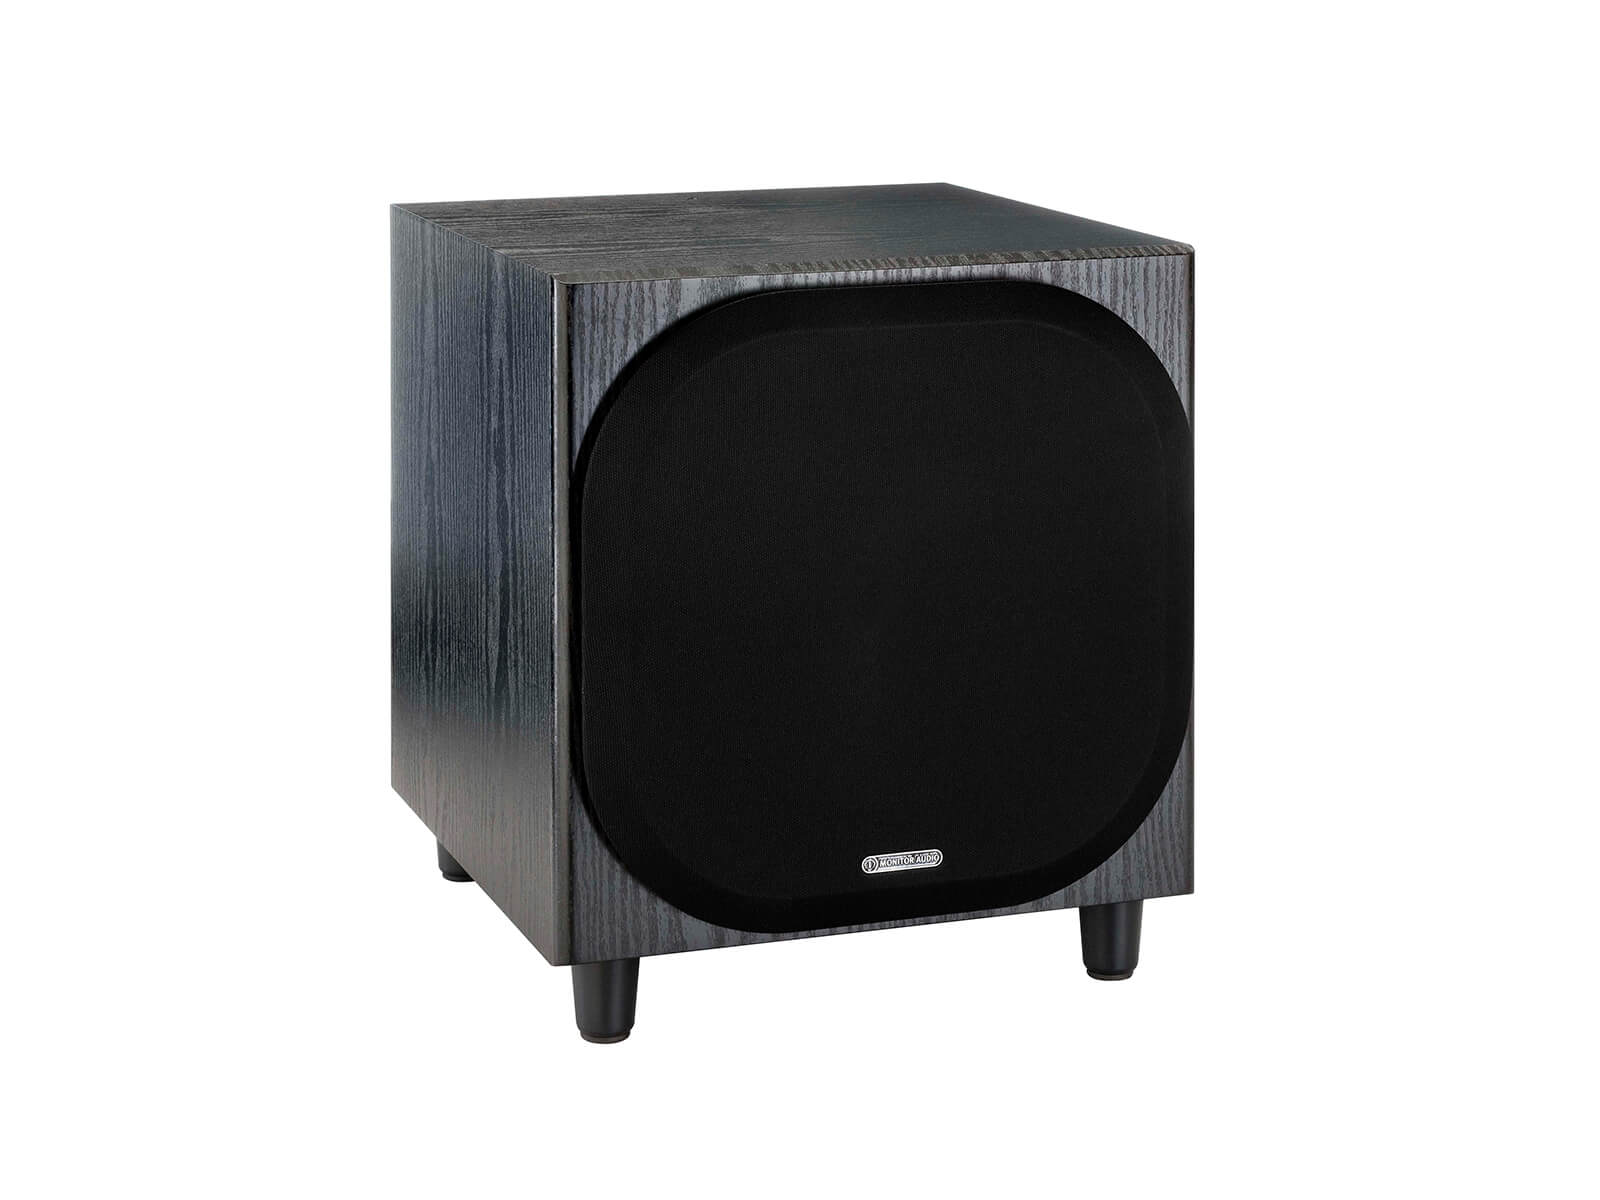 Bronze W10 subwoofer, featuring a grille and a black oak vinyl finish.